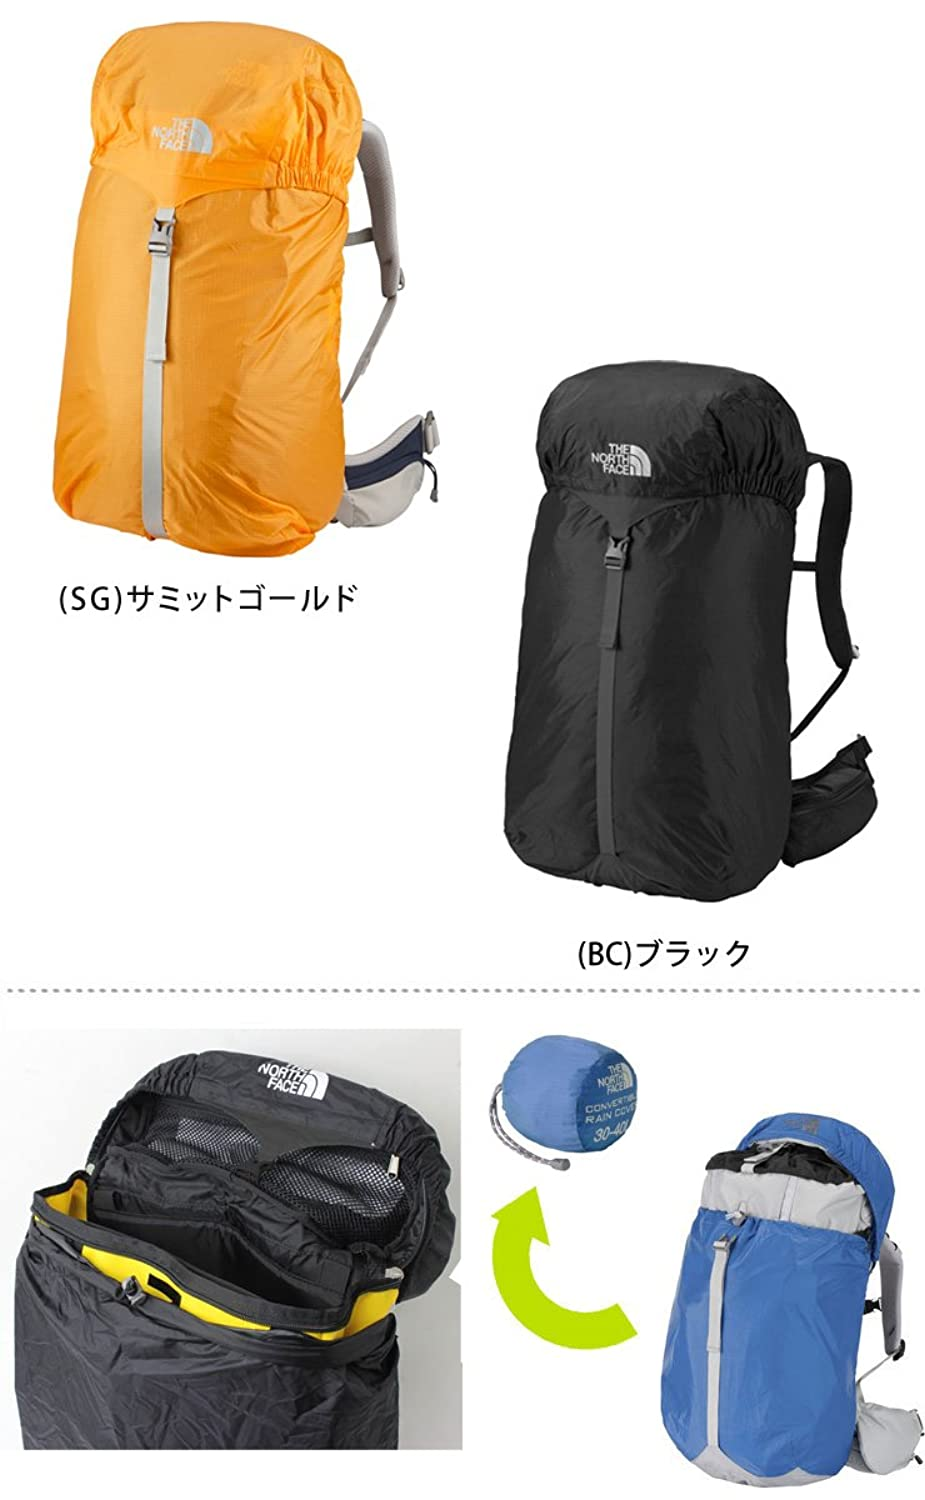 THE NORTH FACE(ザ・ノース・フェイス) CONVERTIBLE RAINCOVER 30-40ℓ